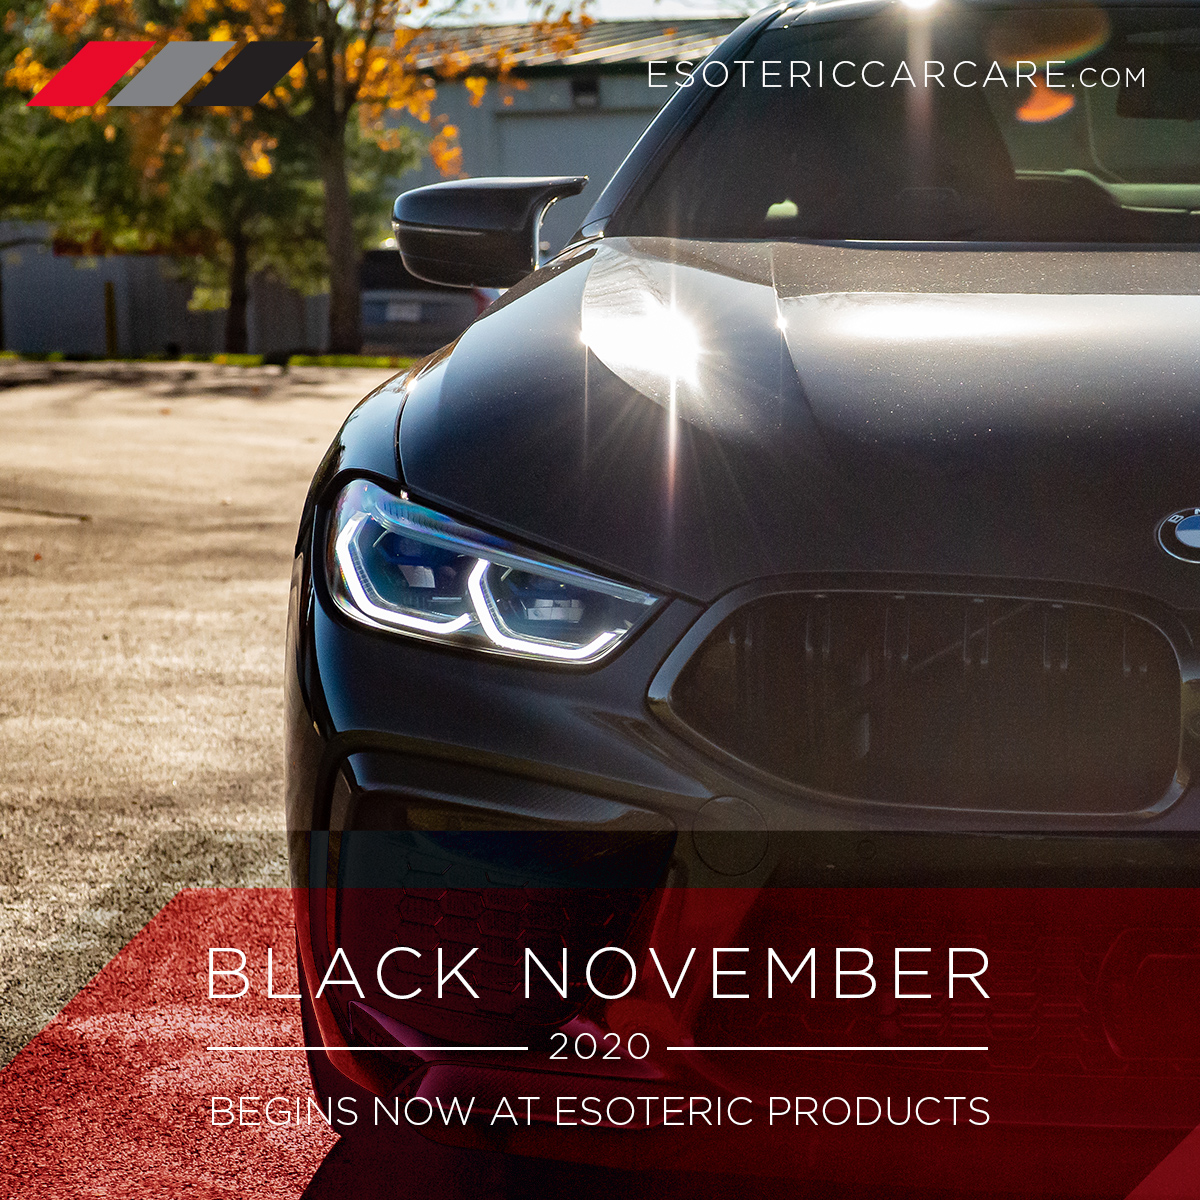 Our Largest Detailing Product Sale of the Year Begins Now -   #blackfriday #detailing #mondaymotivation